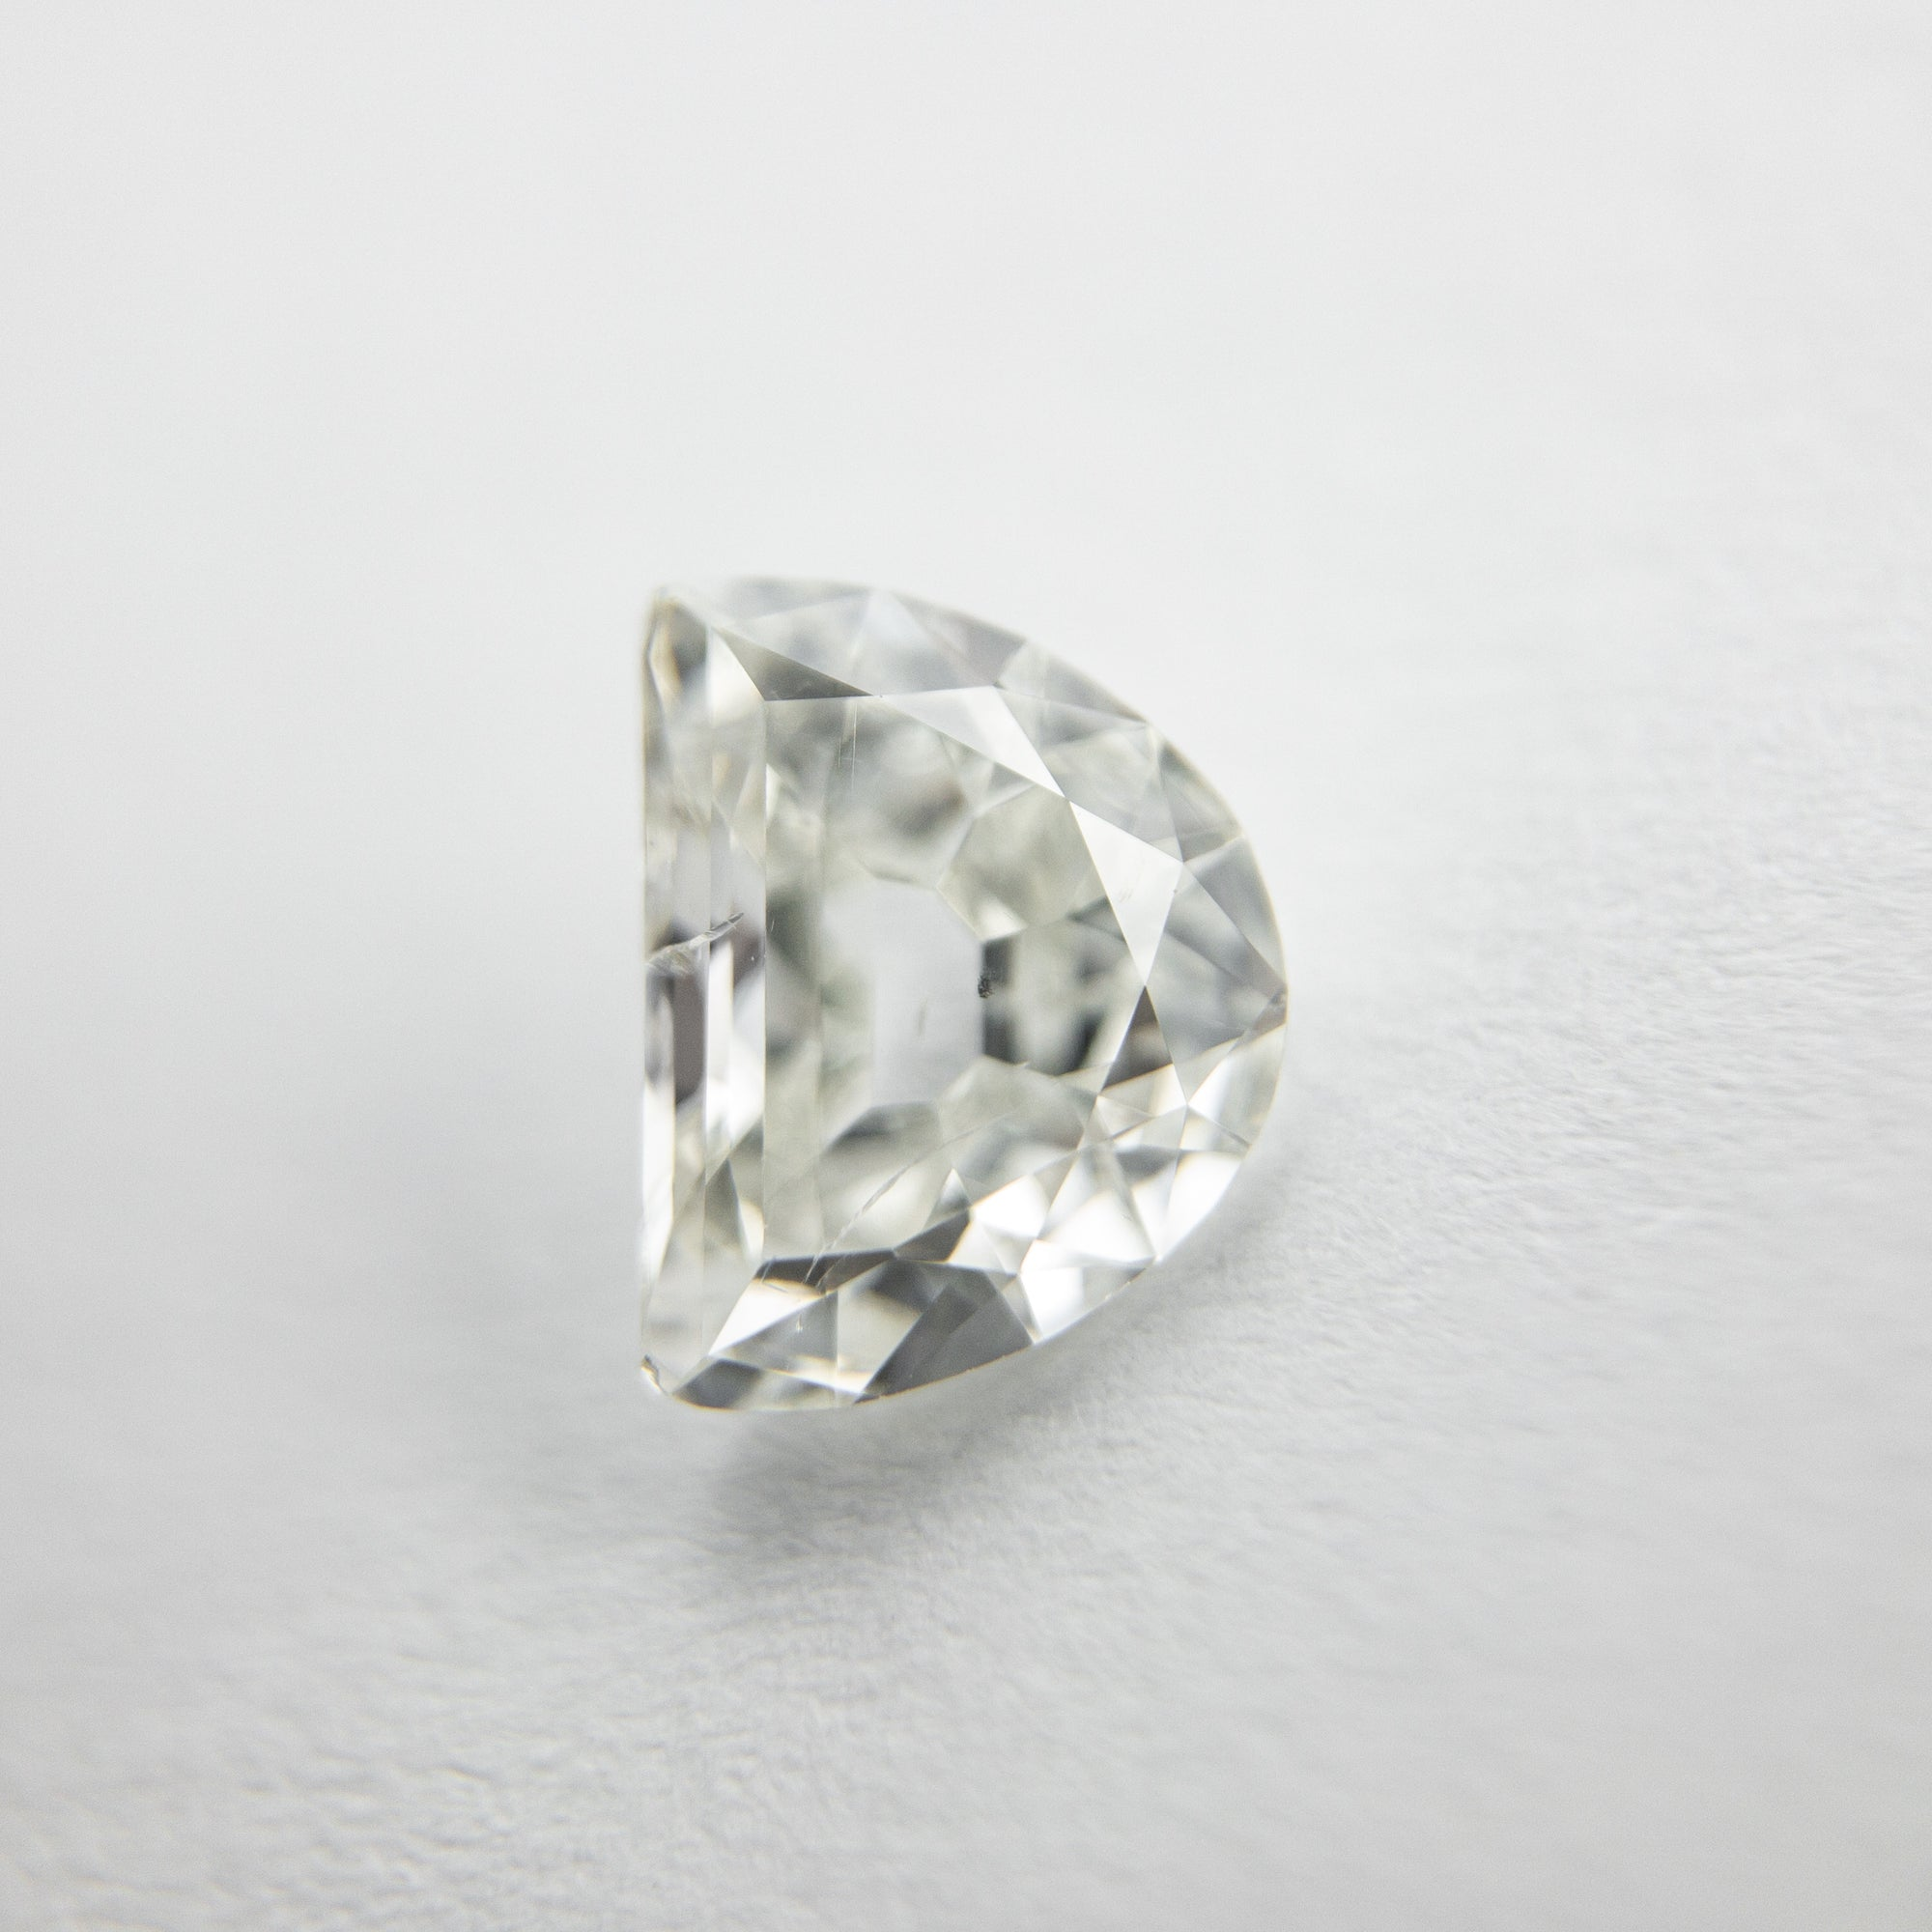 0.85ct 6.99x5.39x2.71mm Half Moon Modern Antique Cut 18129-10